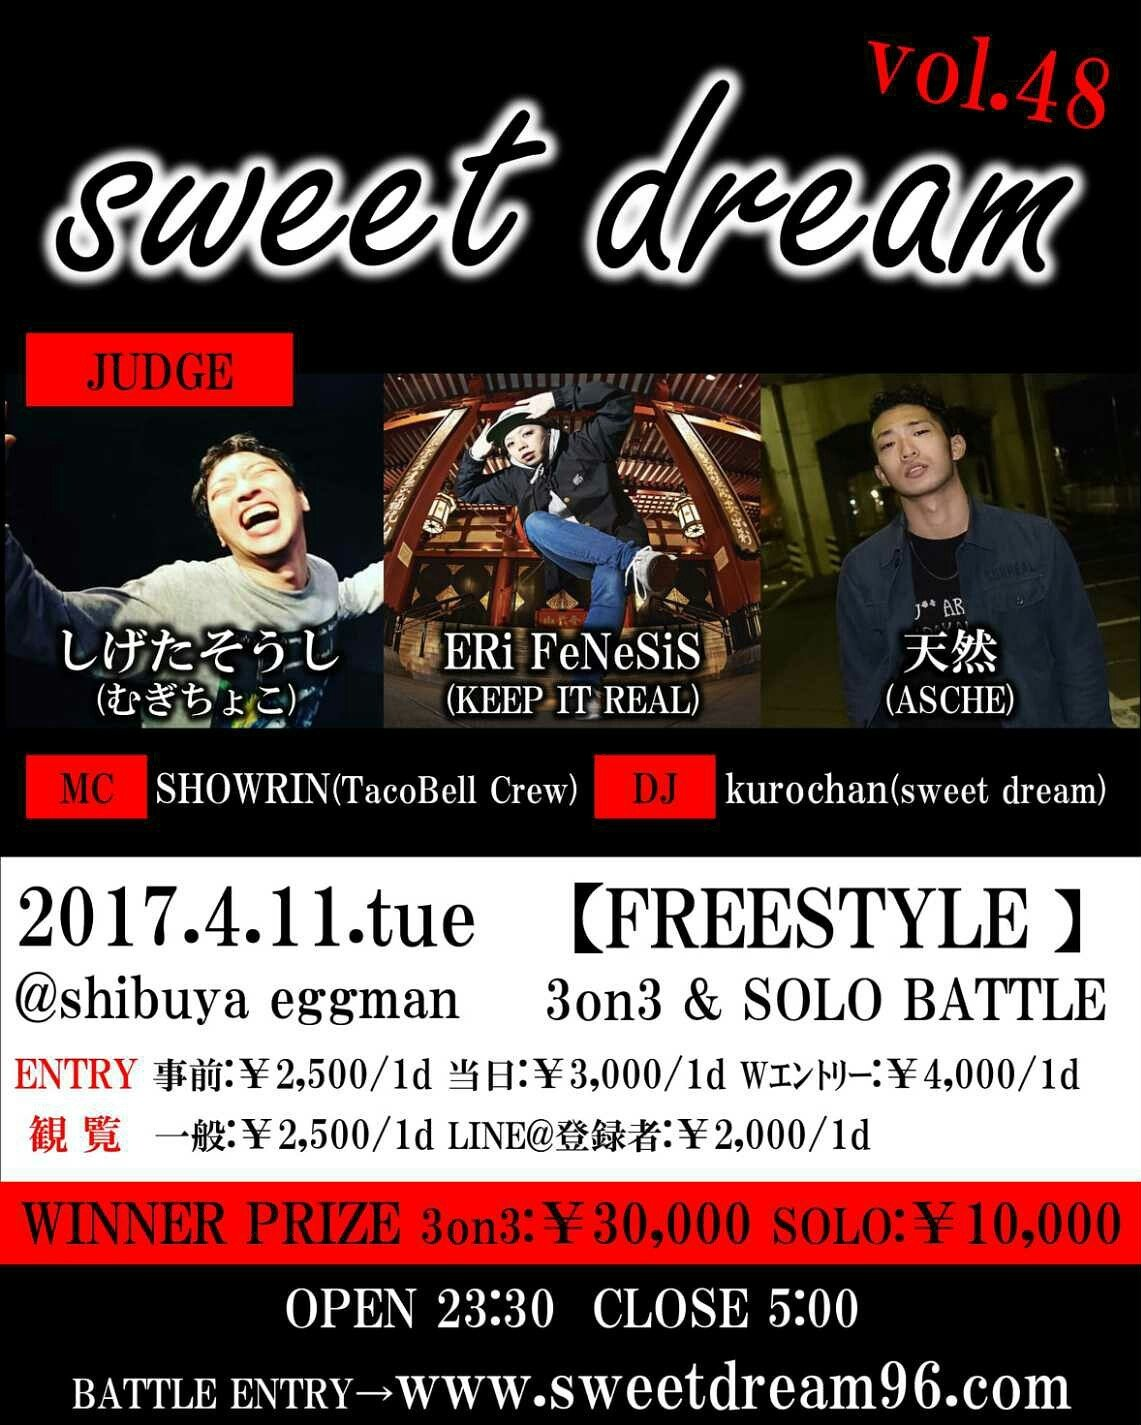 sweet dream vol.48 FREESTYLE 3on3 & SOLO BATTLE